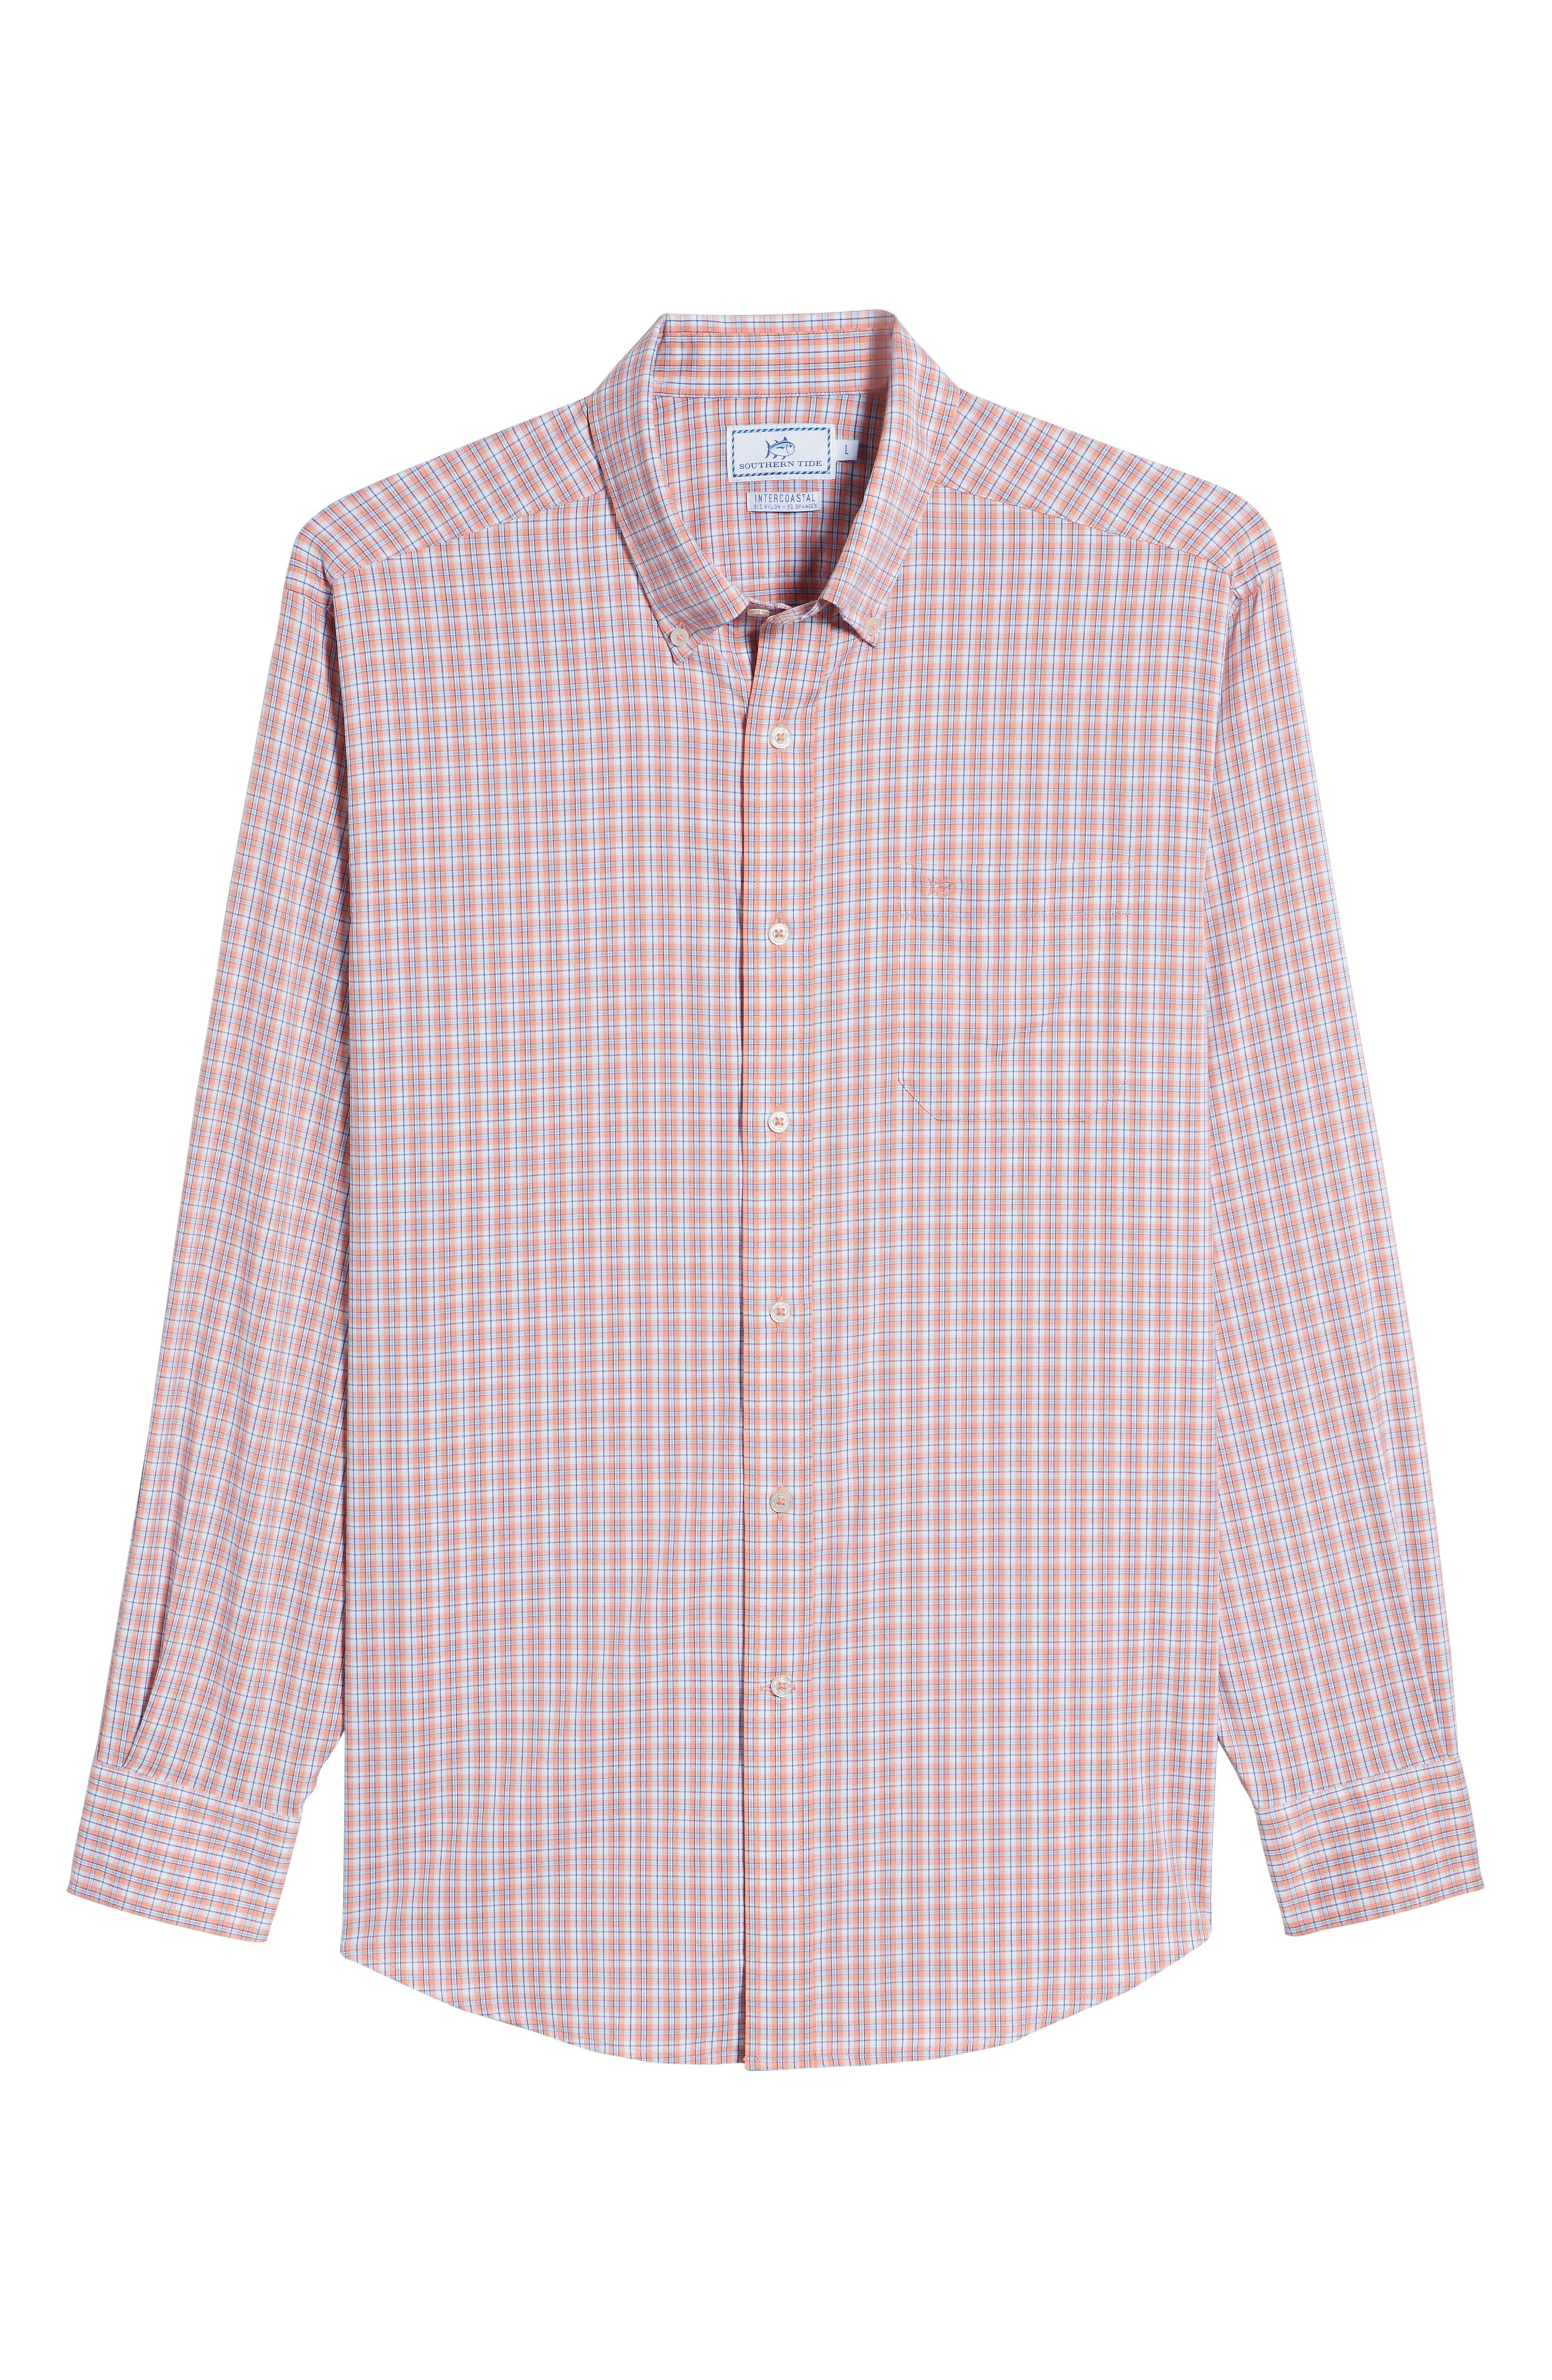 Grand Turk Regular Fit Stretch Plaid Sport Shirt,                             Alternate thumbnail 6, color,                             Nectar Coral